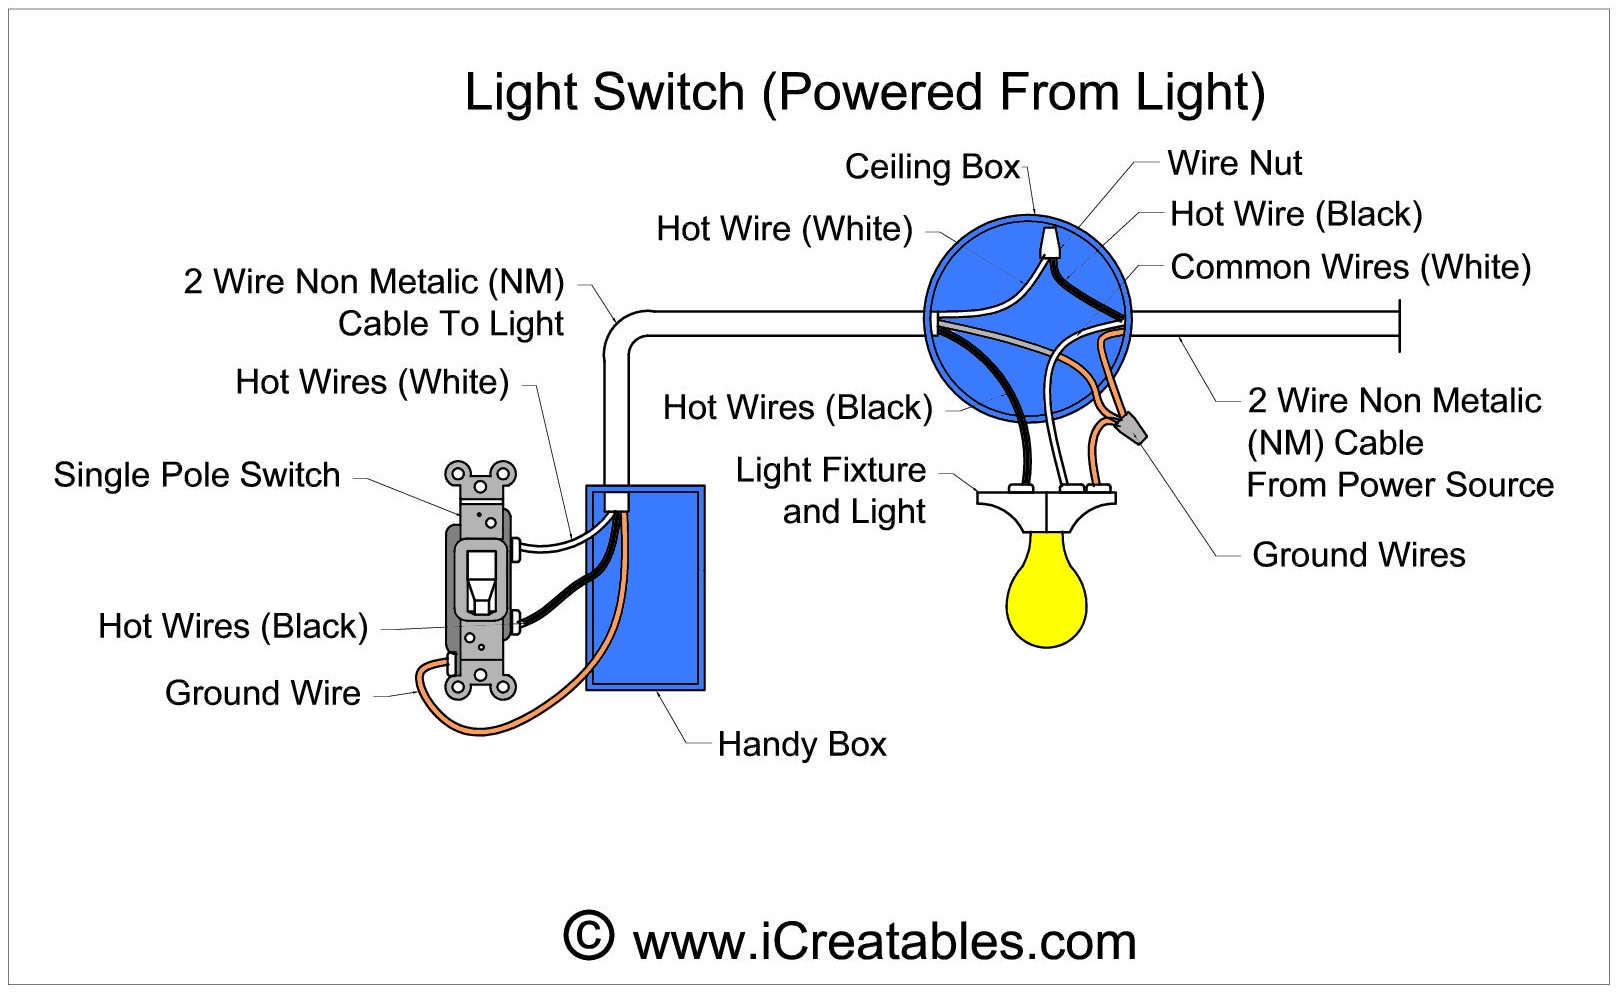 hight resolution of light switch wiring with power coming from the light